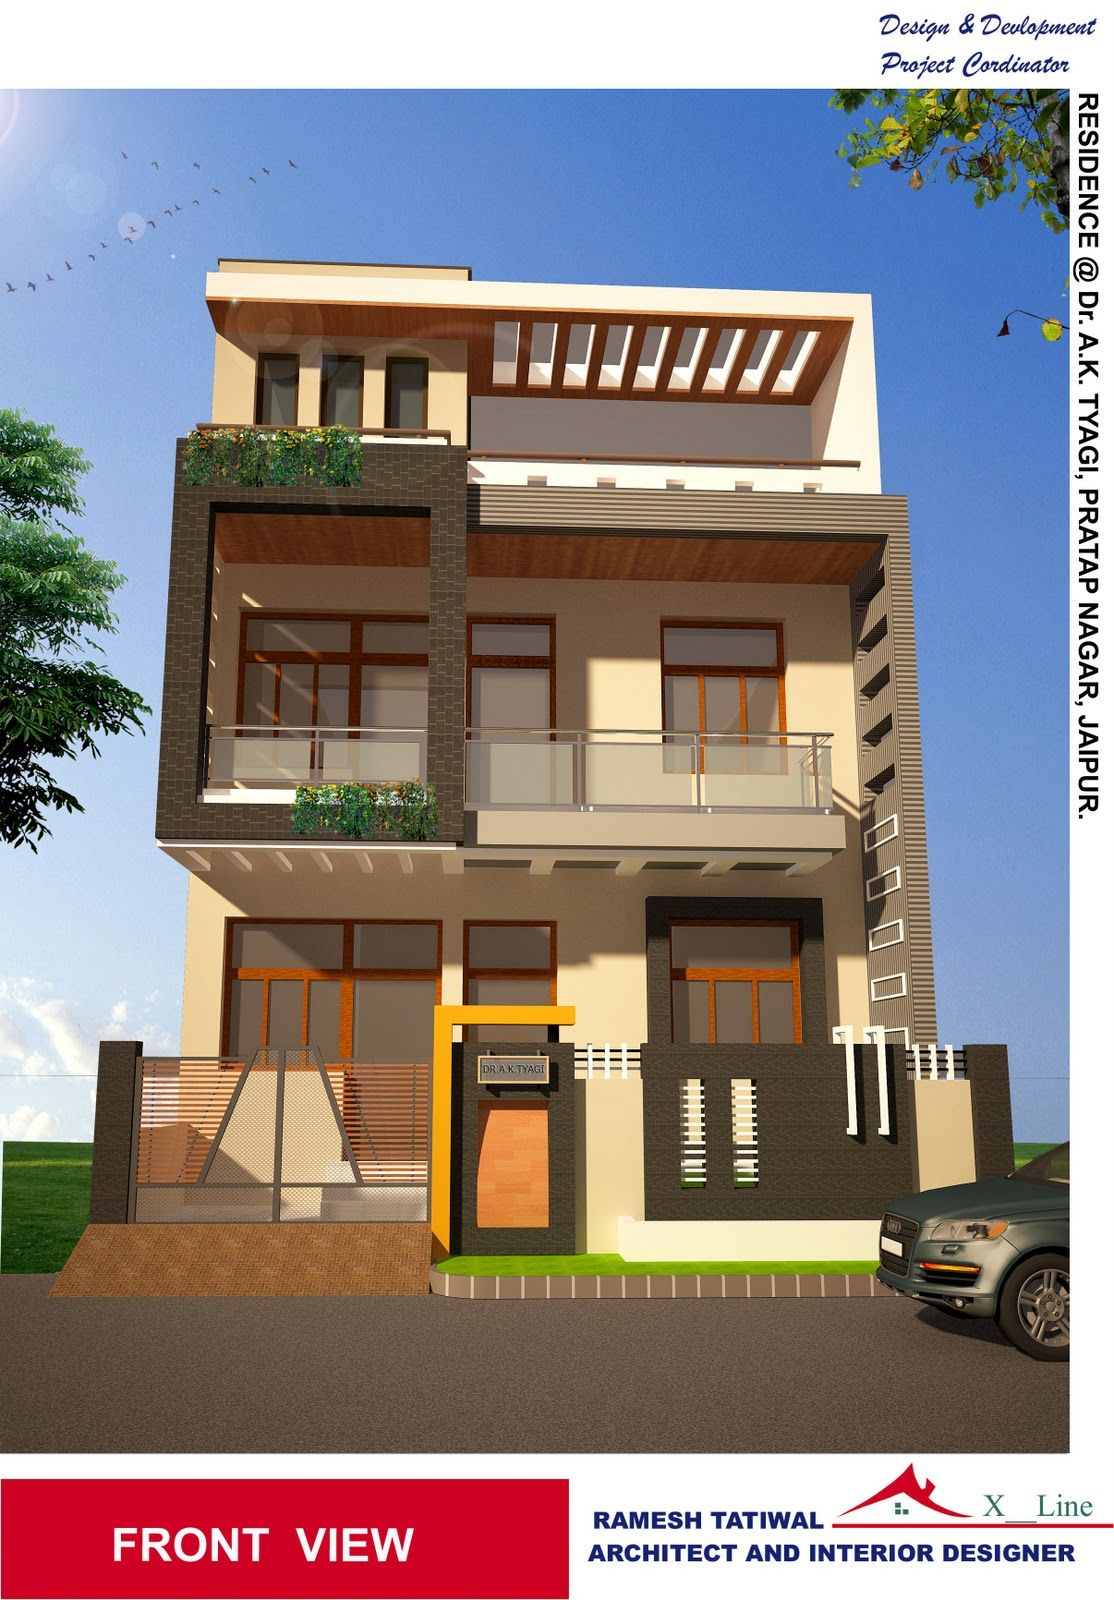 Housedesigns modern indian home architecture design from Indian home design